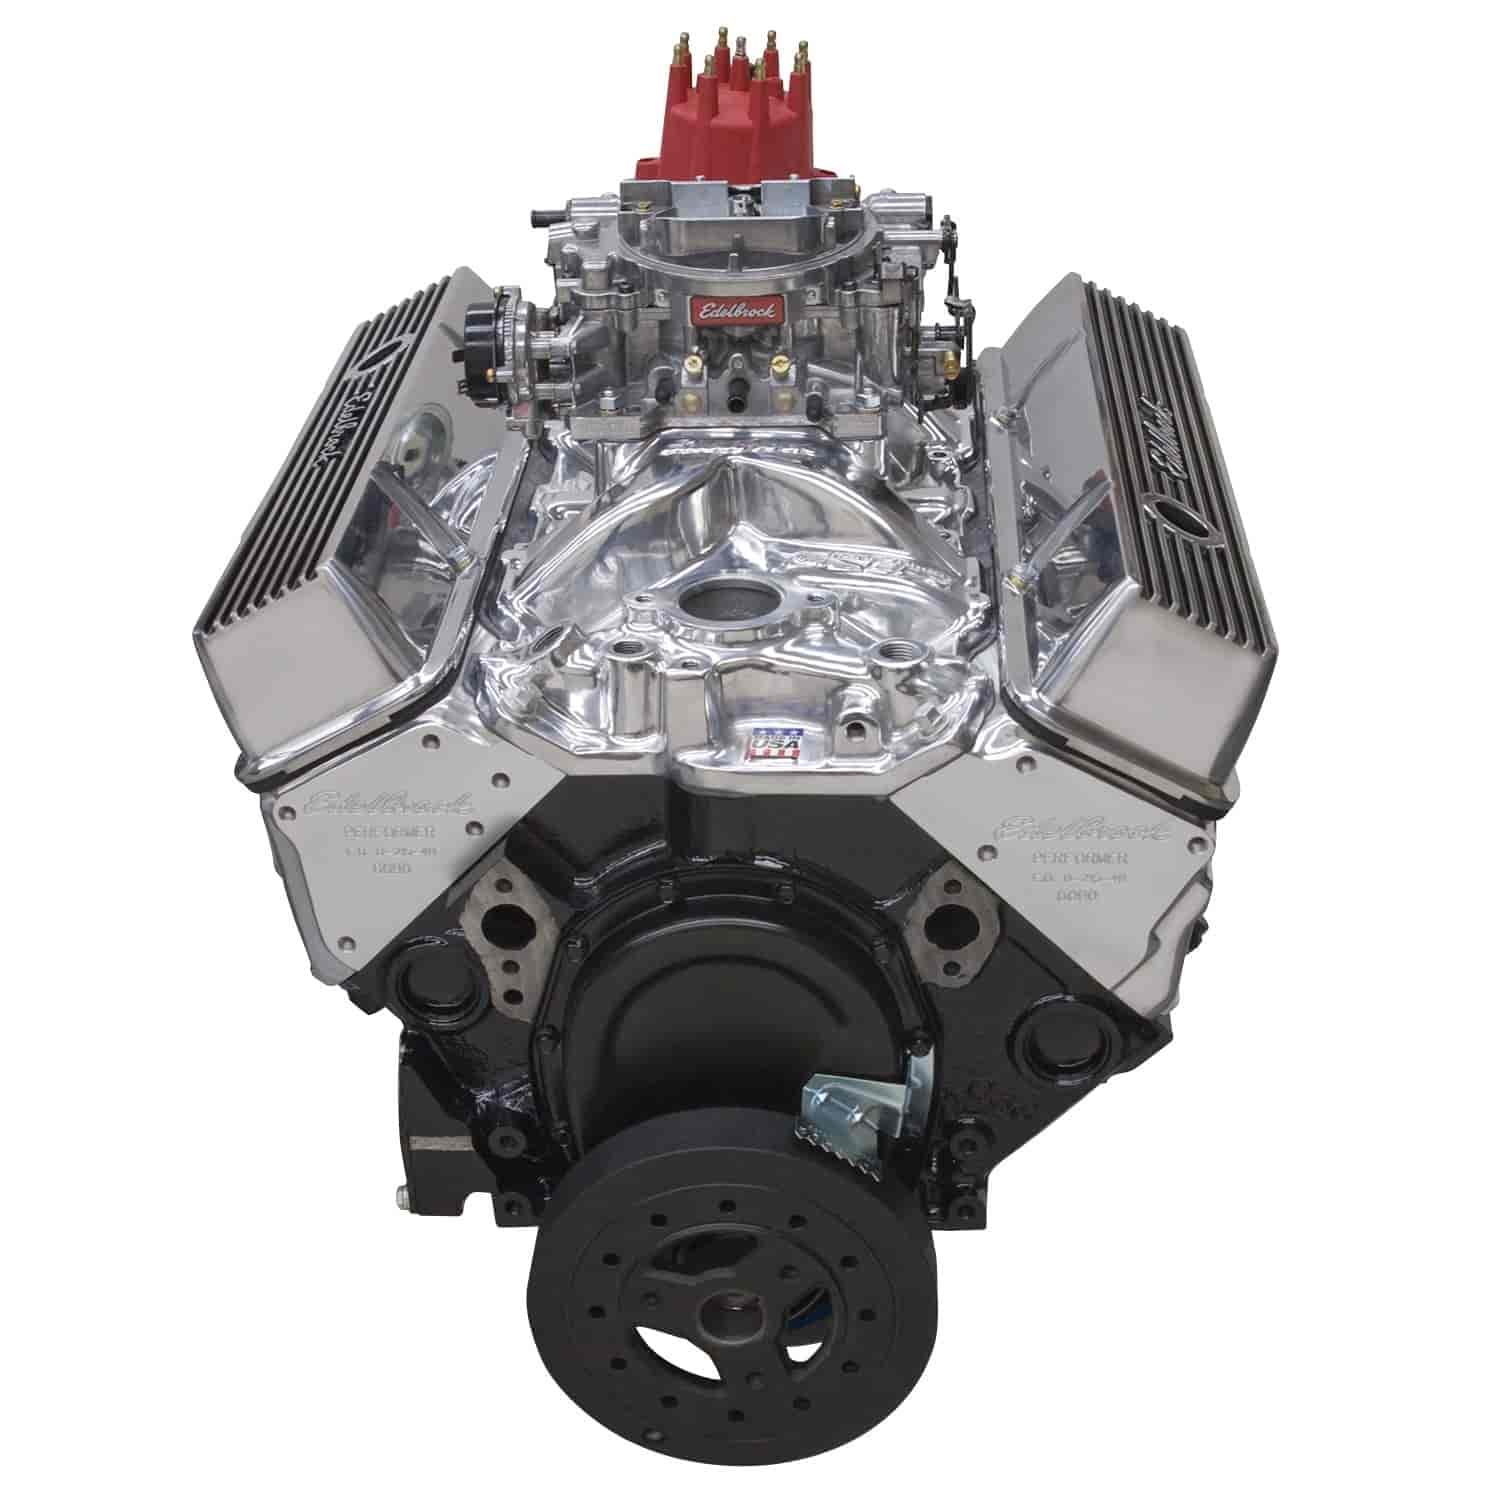 Edelbrock 45401 - Edelbrock Performer 350ci /320HP Engines